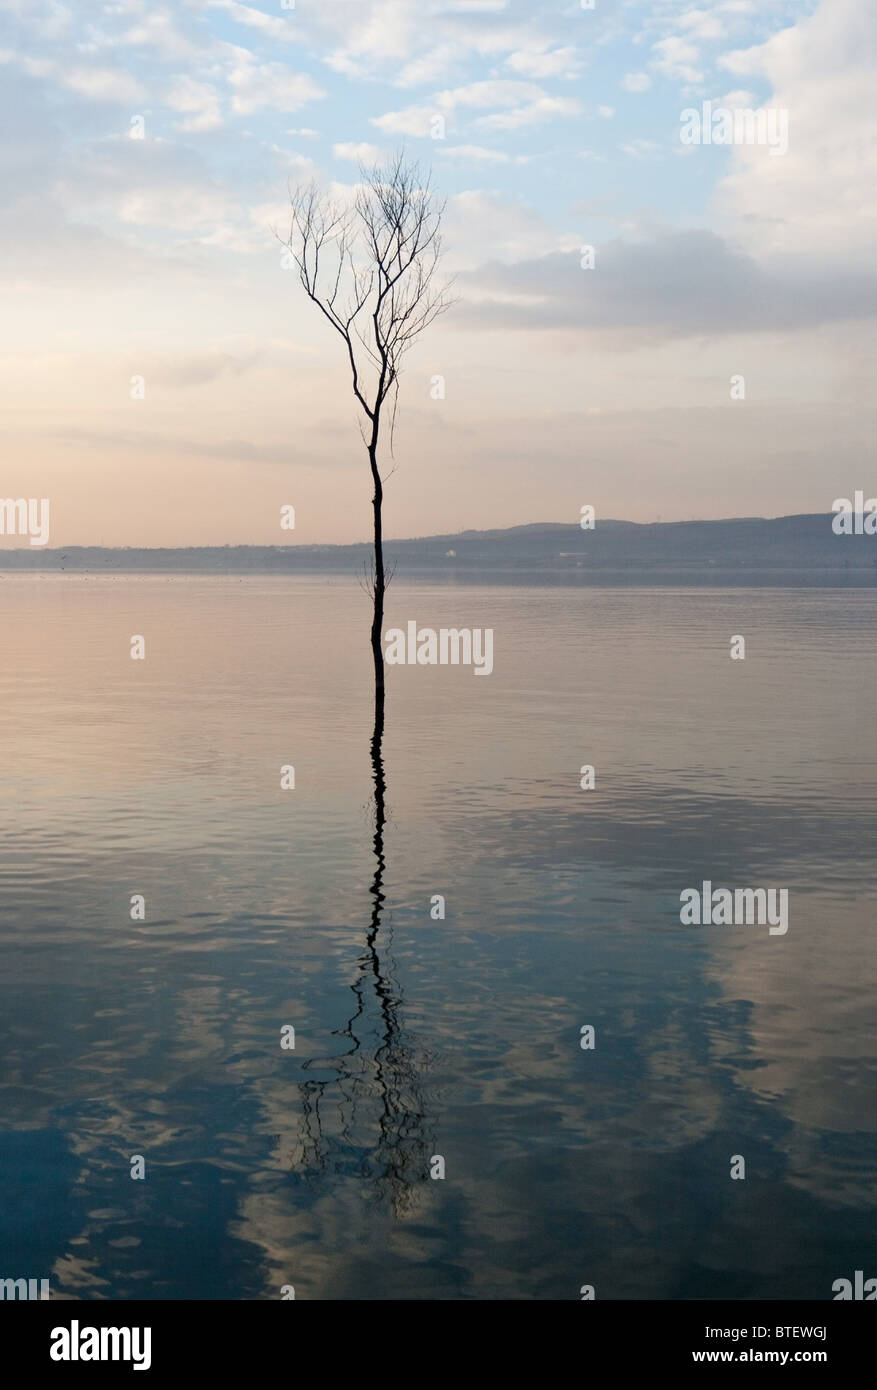 Dried tree in Sapanca lake shot in blue hour. - Stock Image